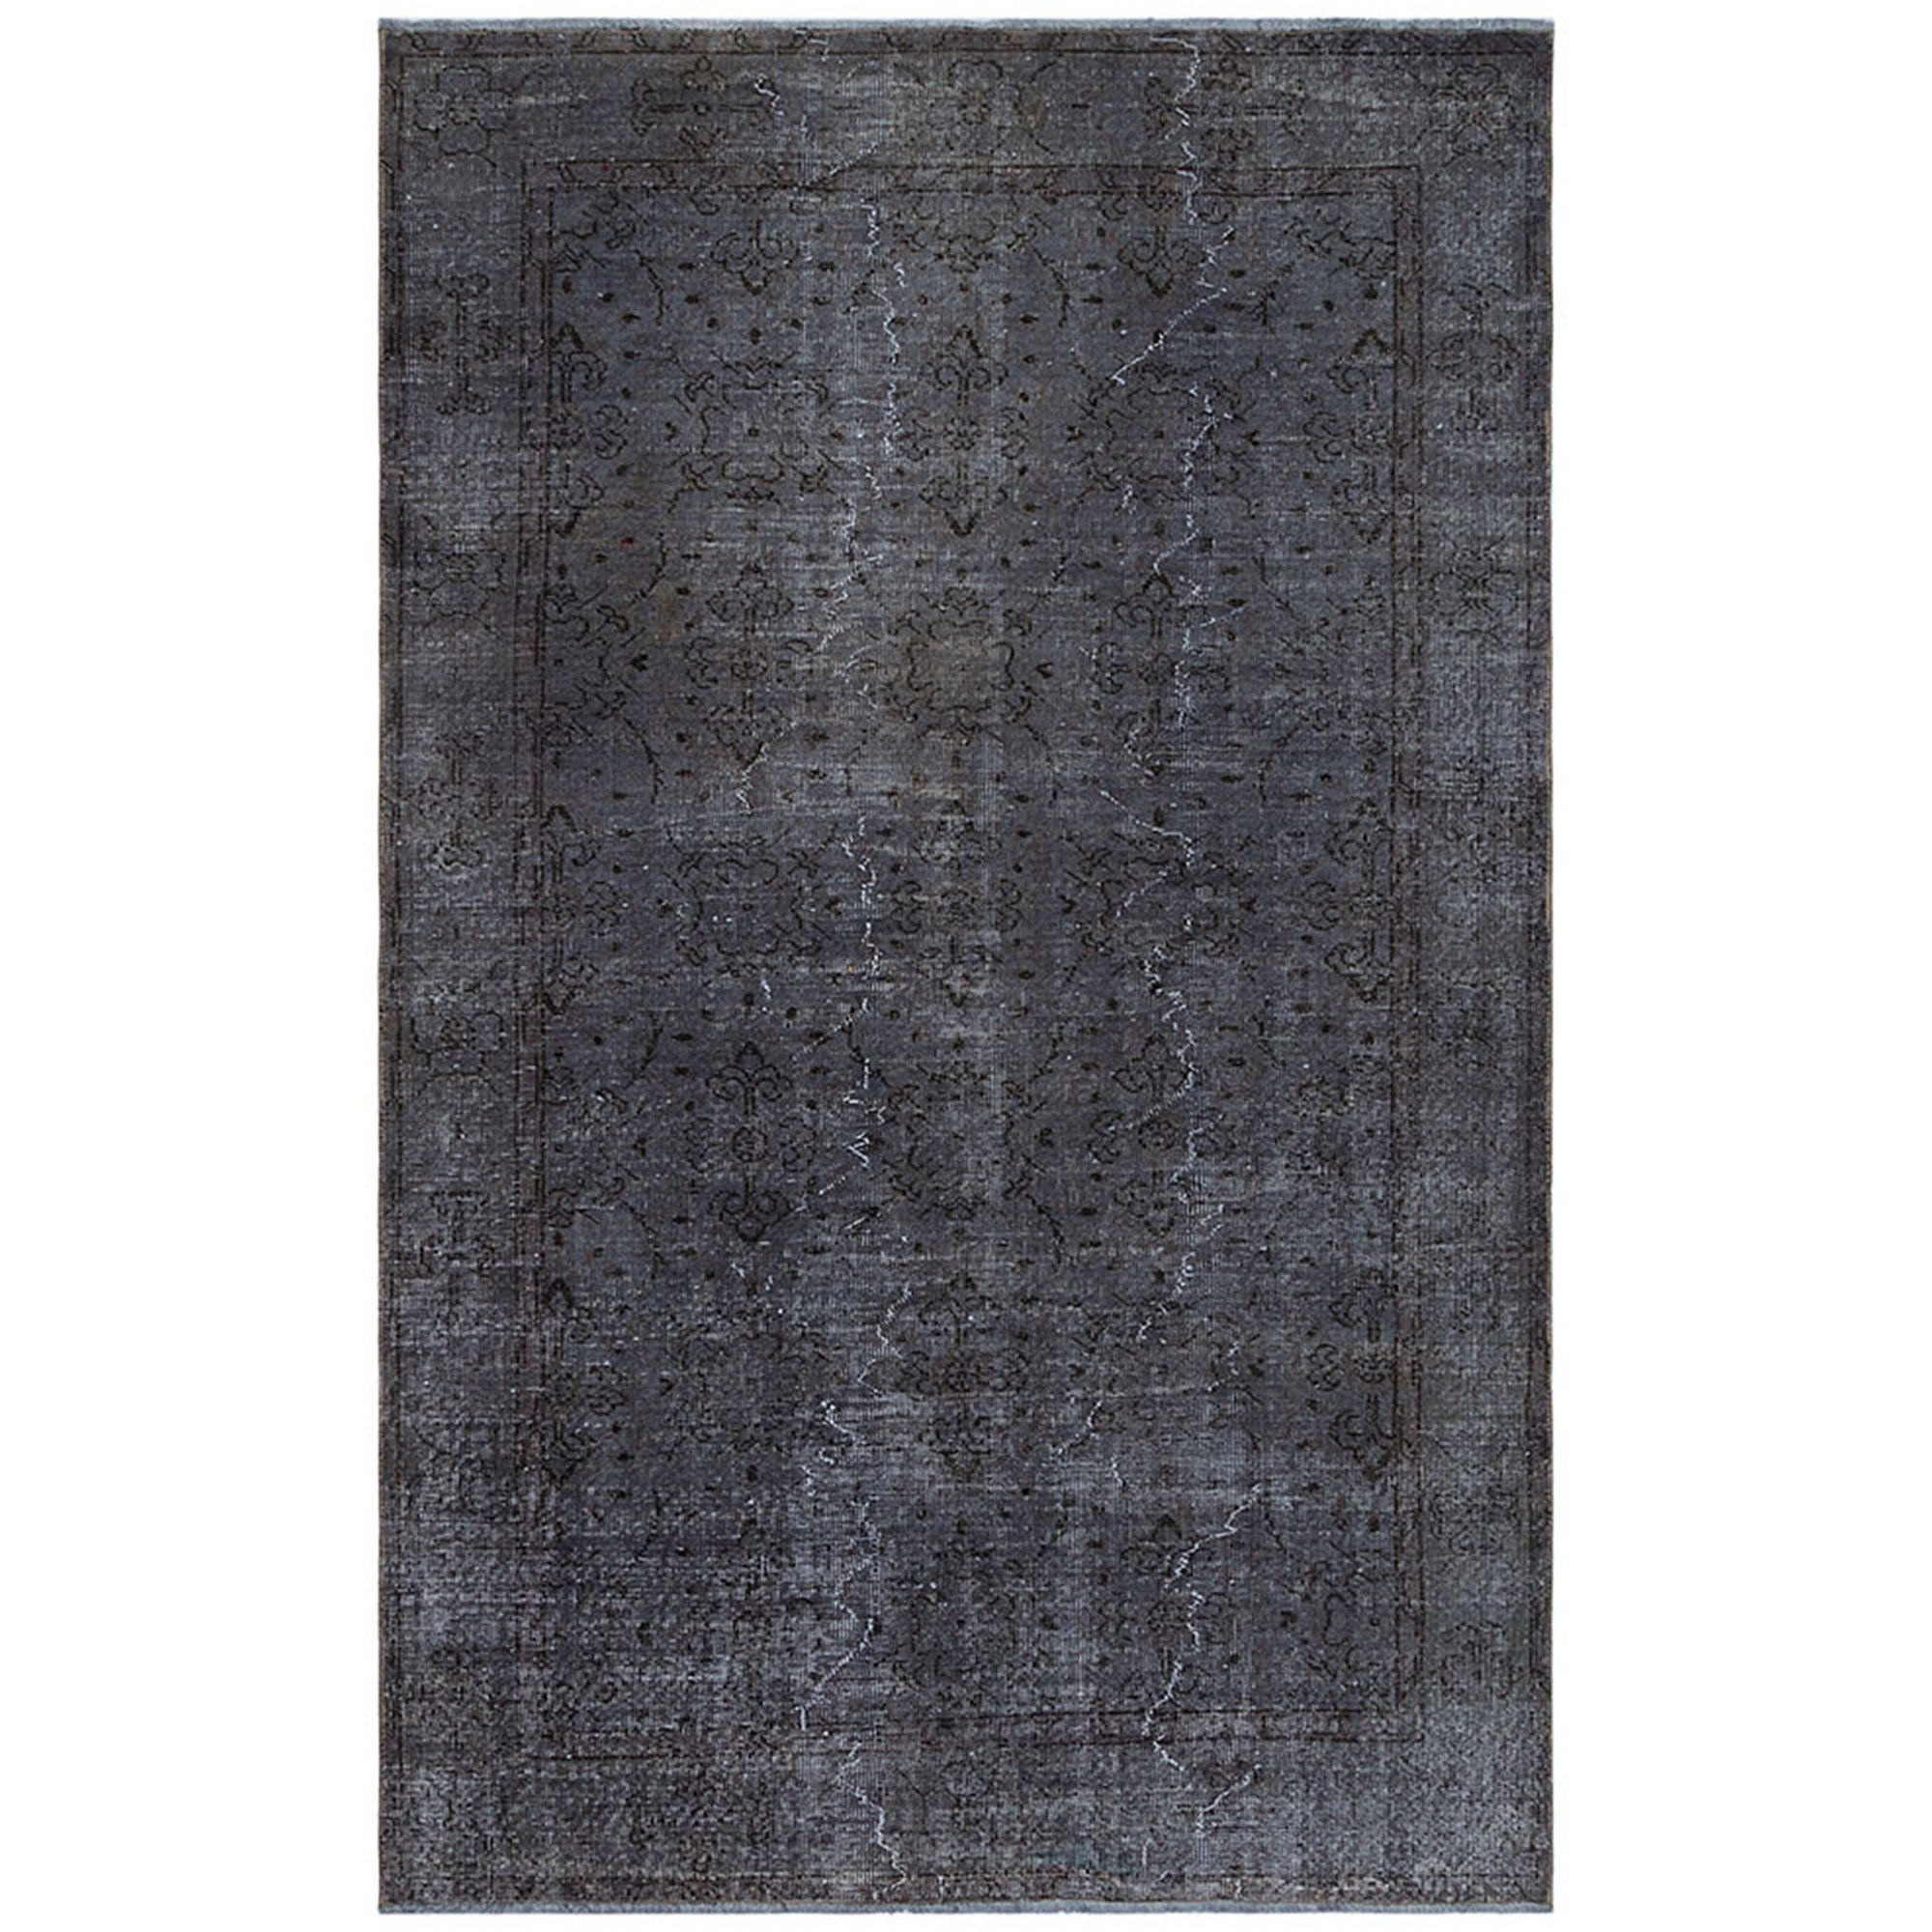 161 X 260 Anatolian Hand Knotted Carpet Vintage Style 60N2135 -  161 × 260 سجادة أناضولية معقودة يدويًا - Shop Online Furniture and Home Decor Store in Dubai, UAE at ebarza